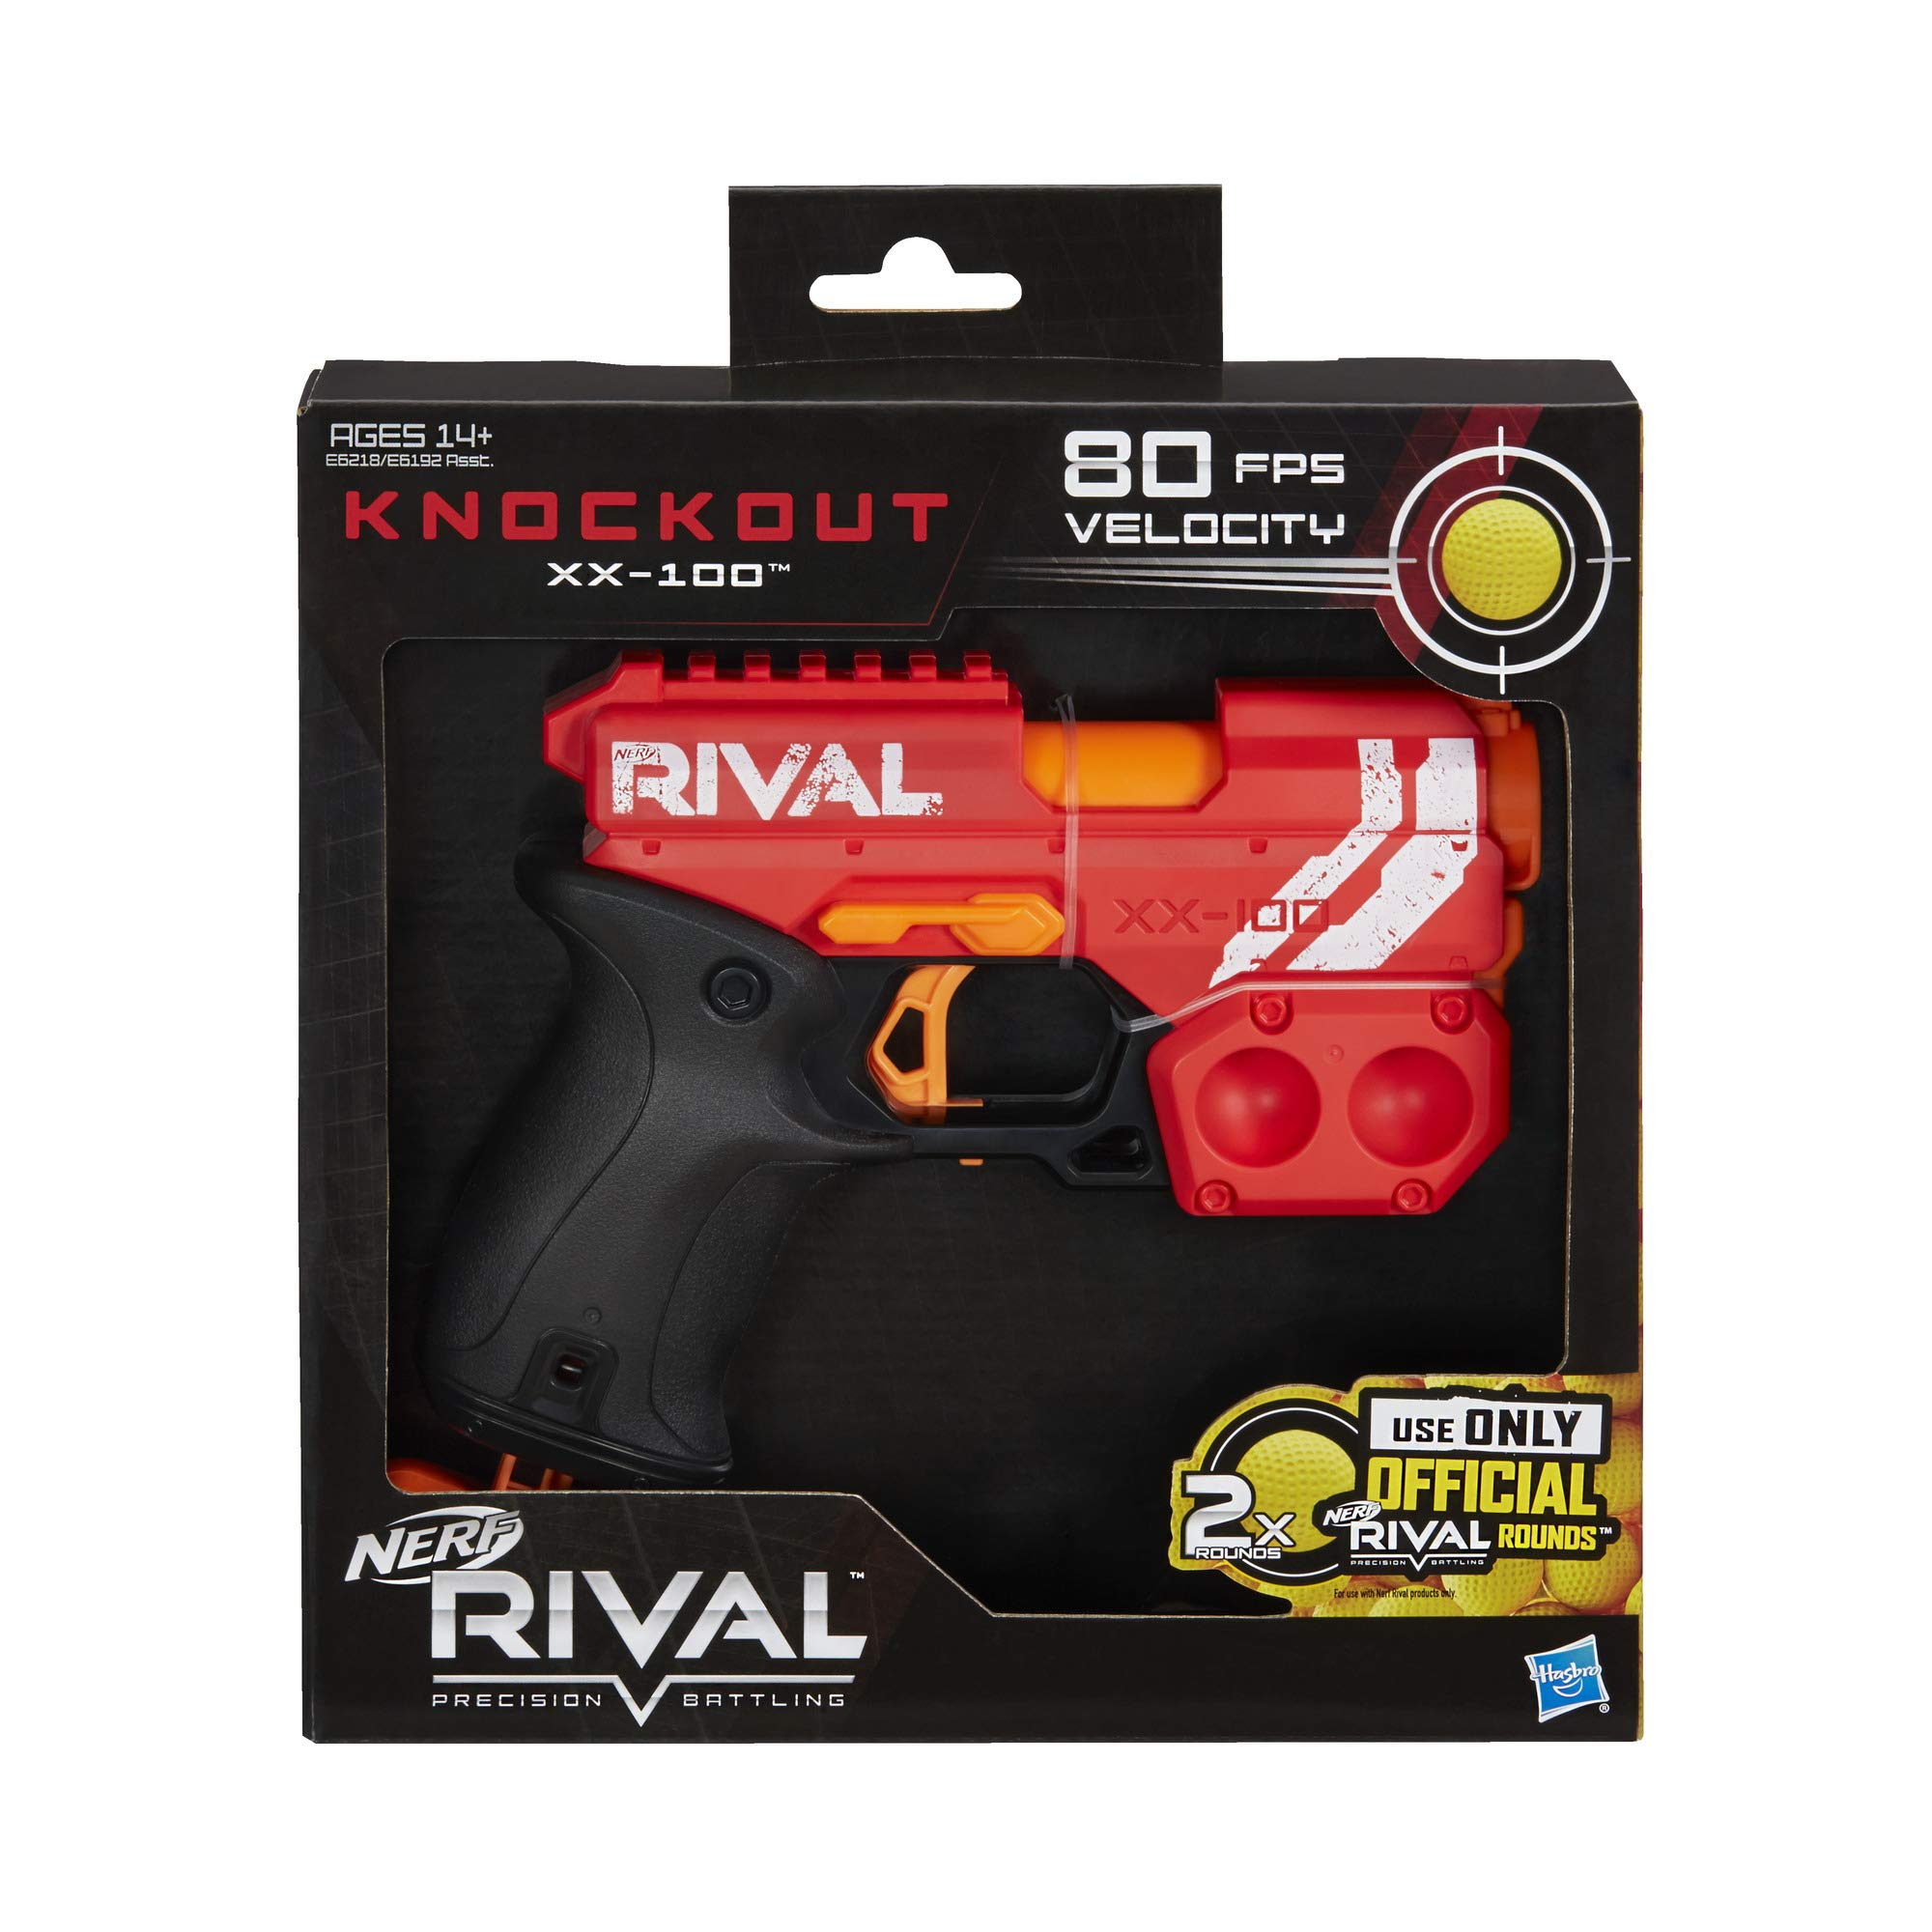 Nerf Plastic Rival Knockout XX-100 Blaster Round Storage, 85 FPS Velocity, Breech Load Includes 2 Official Rival Rounds Multicolor